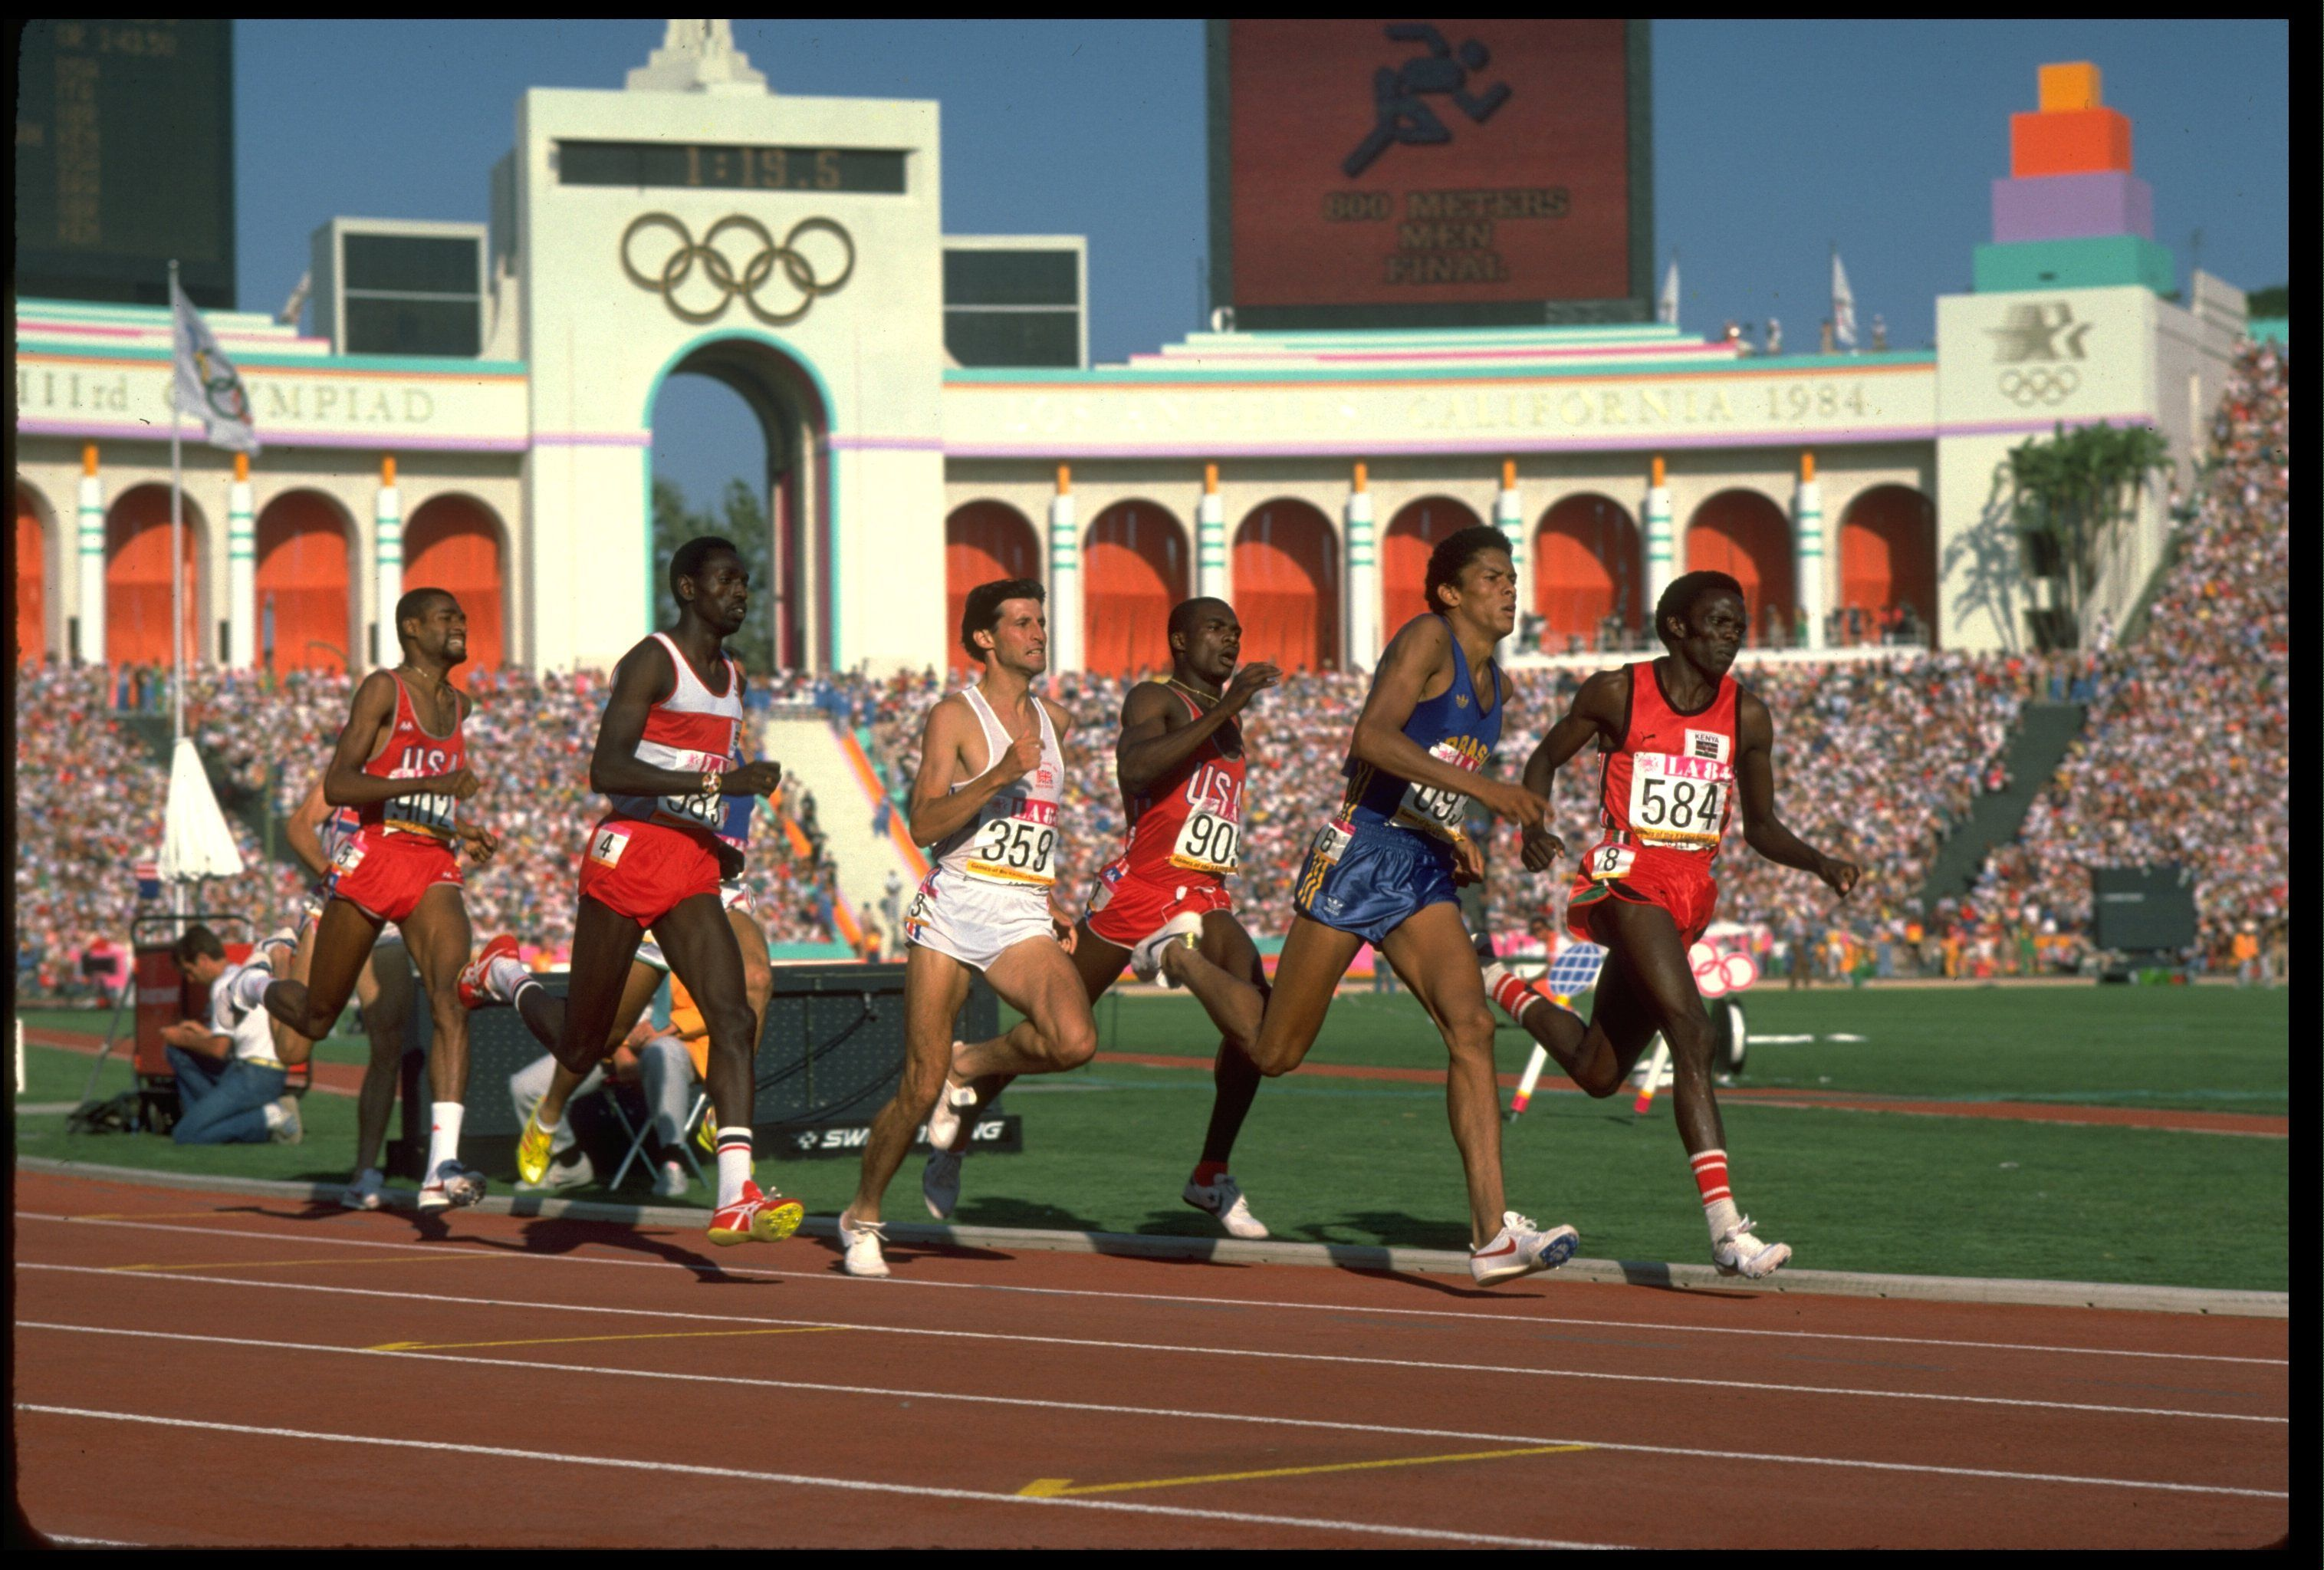 Pin By Michael Riccardi On Olympic Cities Americas In 2020 Olympics 1984 Summer Olympics Los Angeles